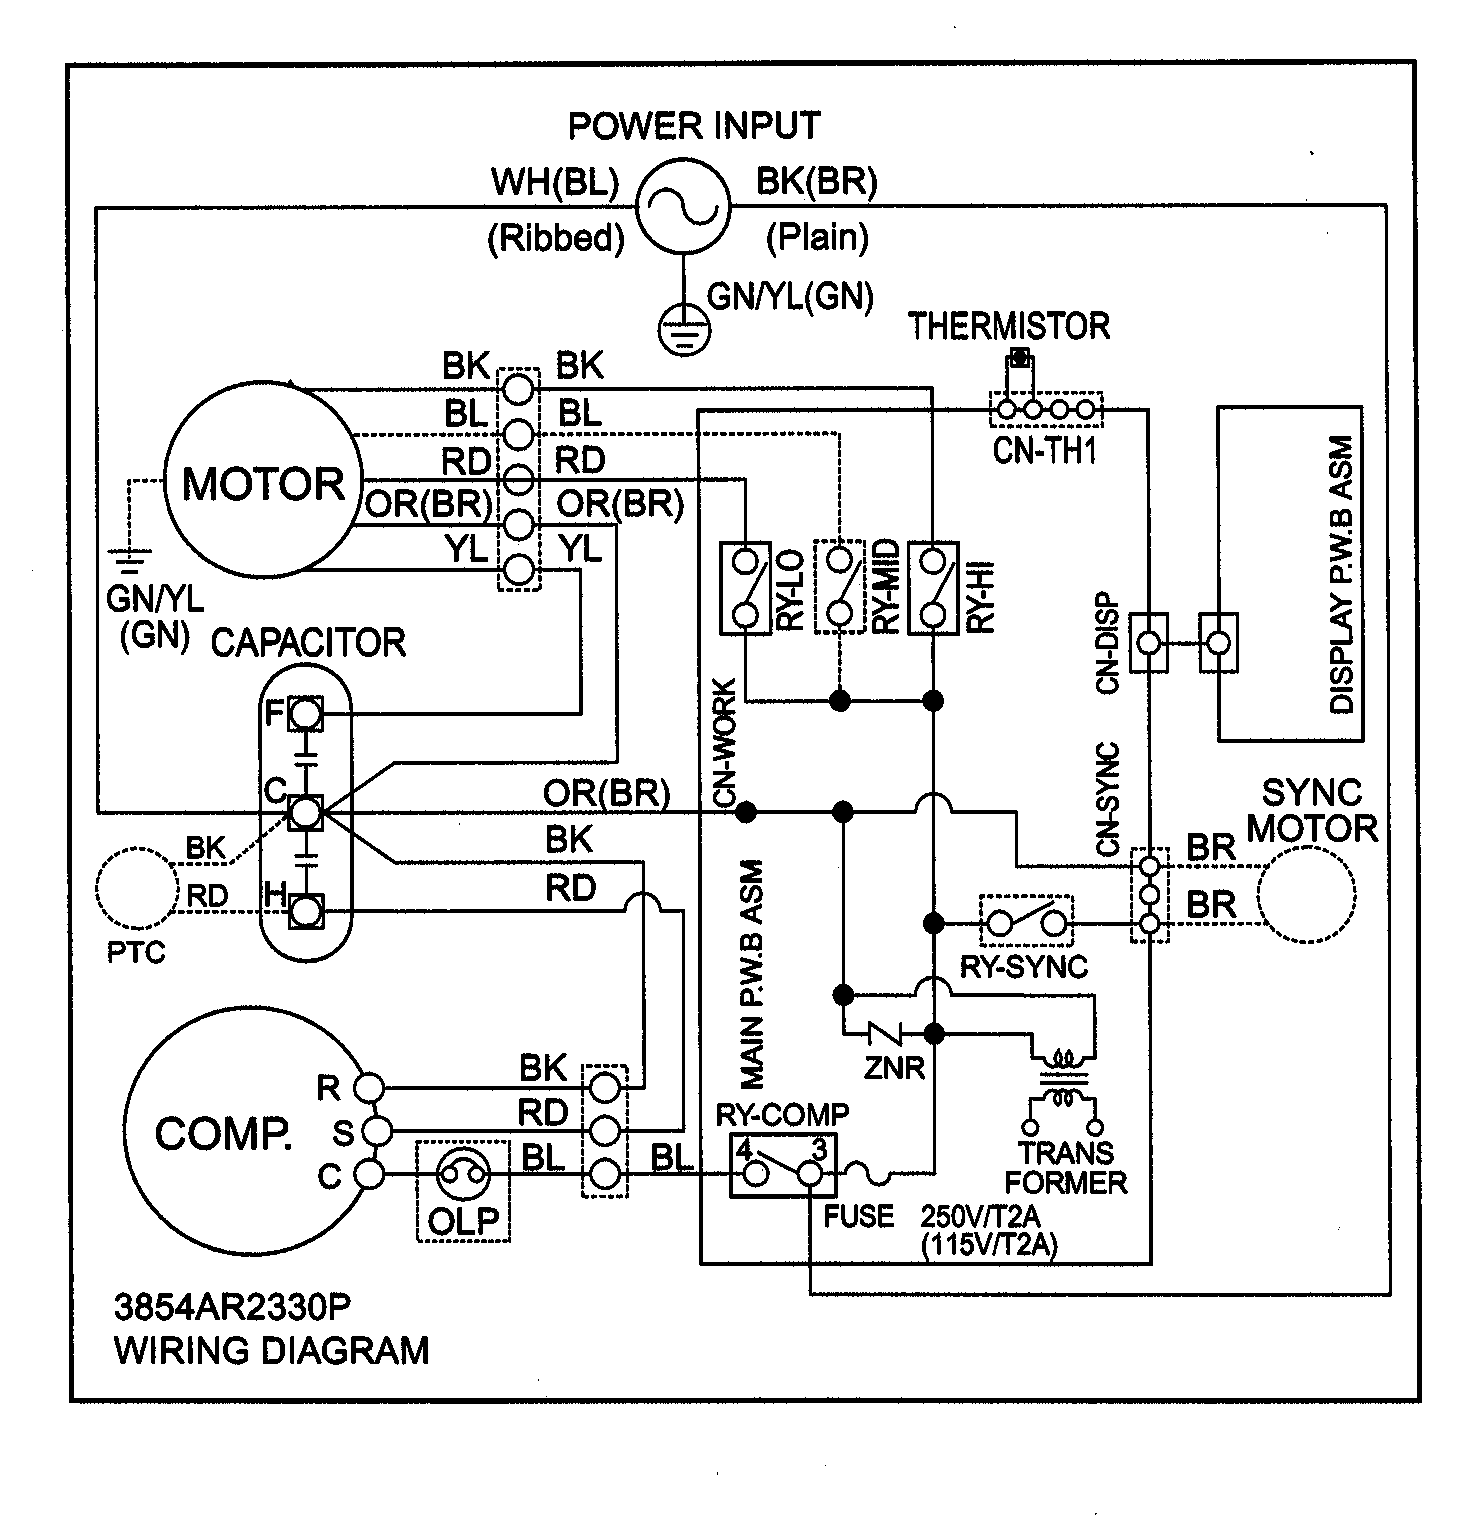 [DIAGRAM] Unit Diagram Wiring Ac Kg8000r FULL Version HD